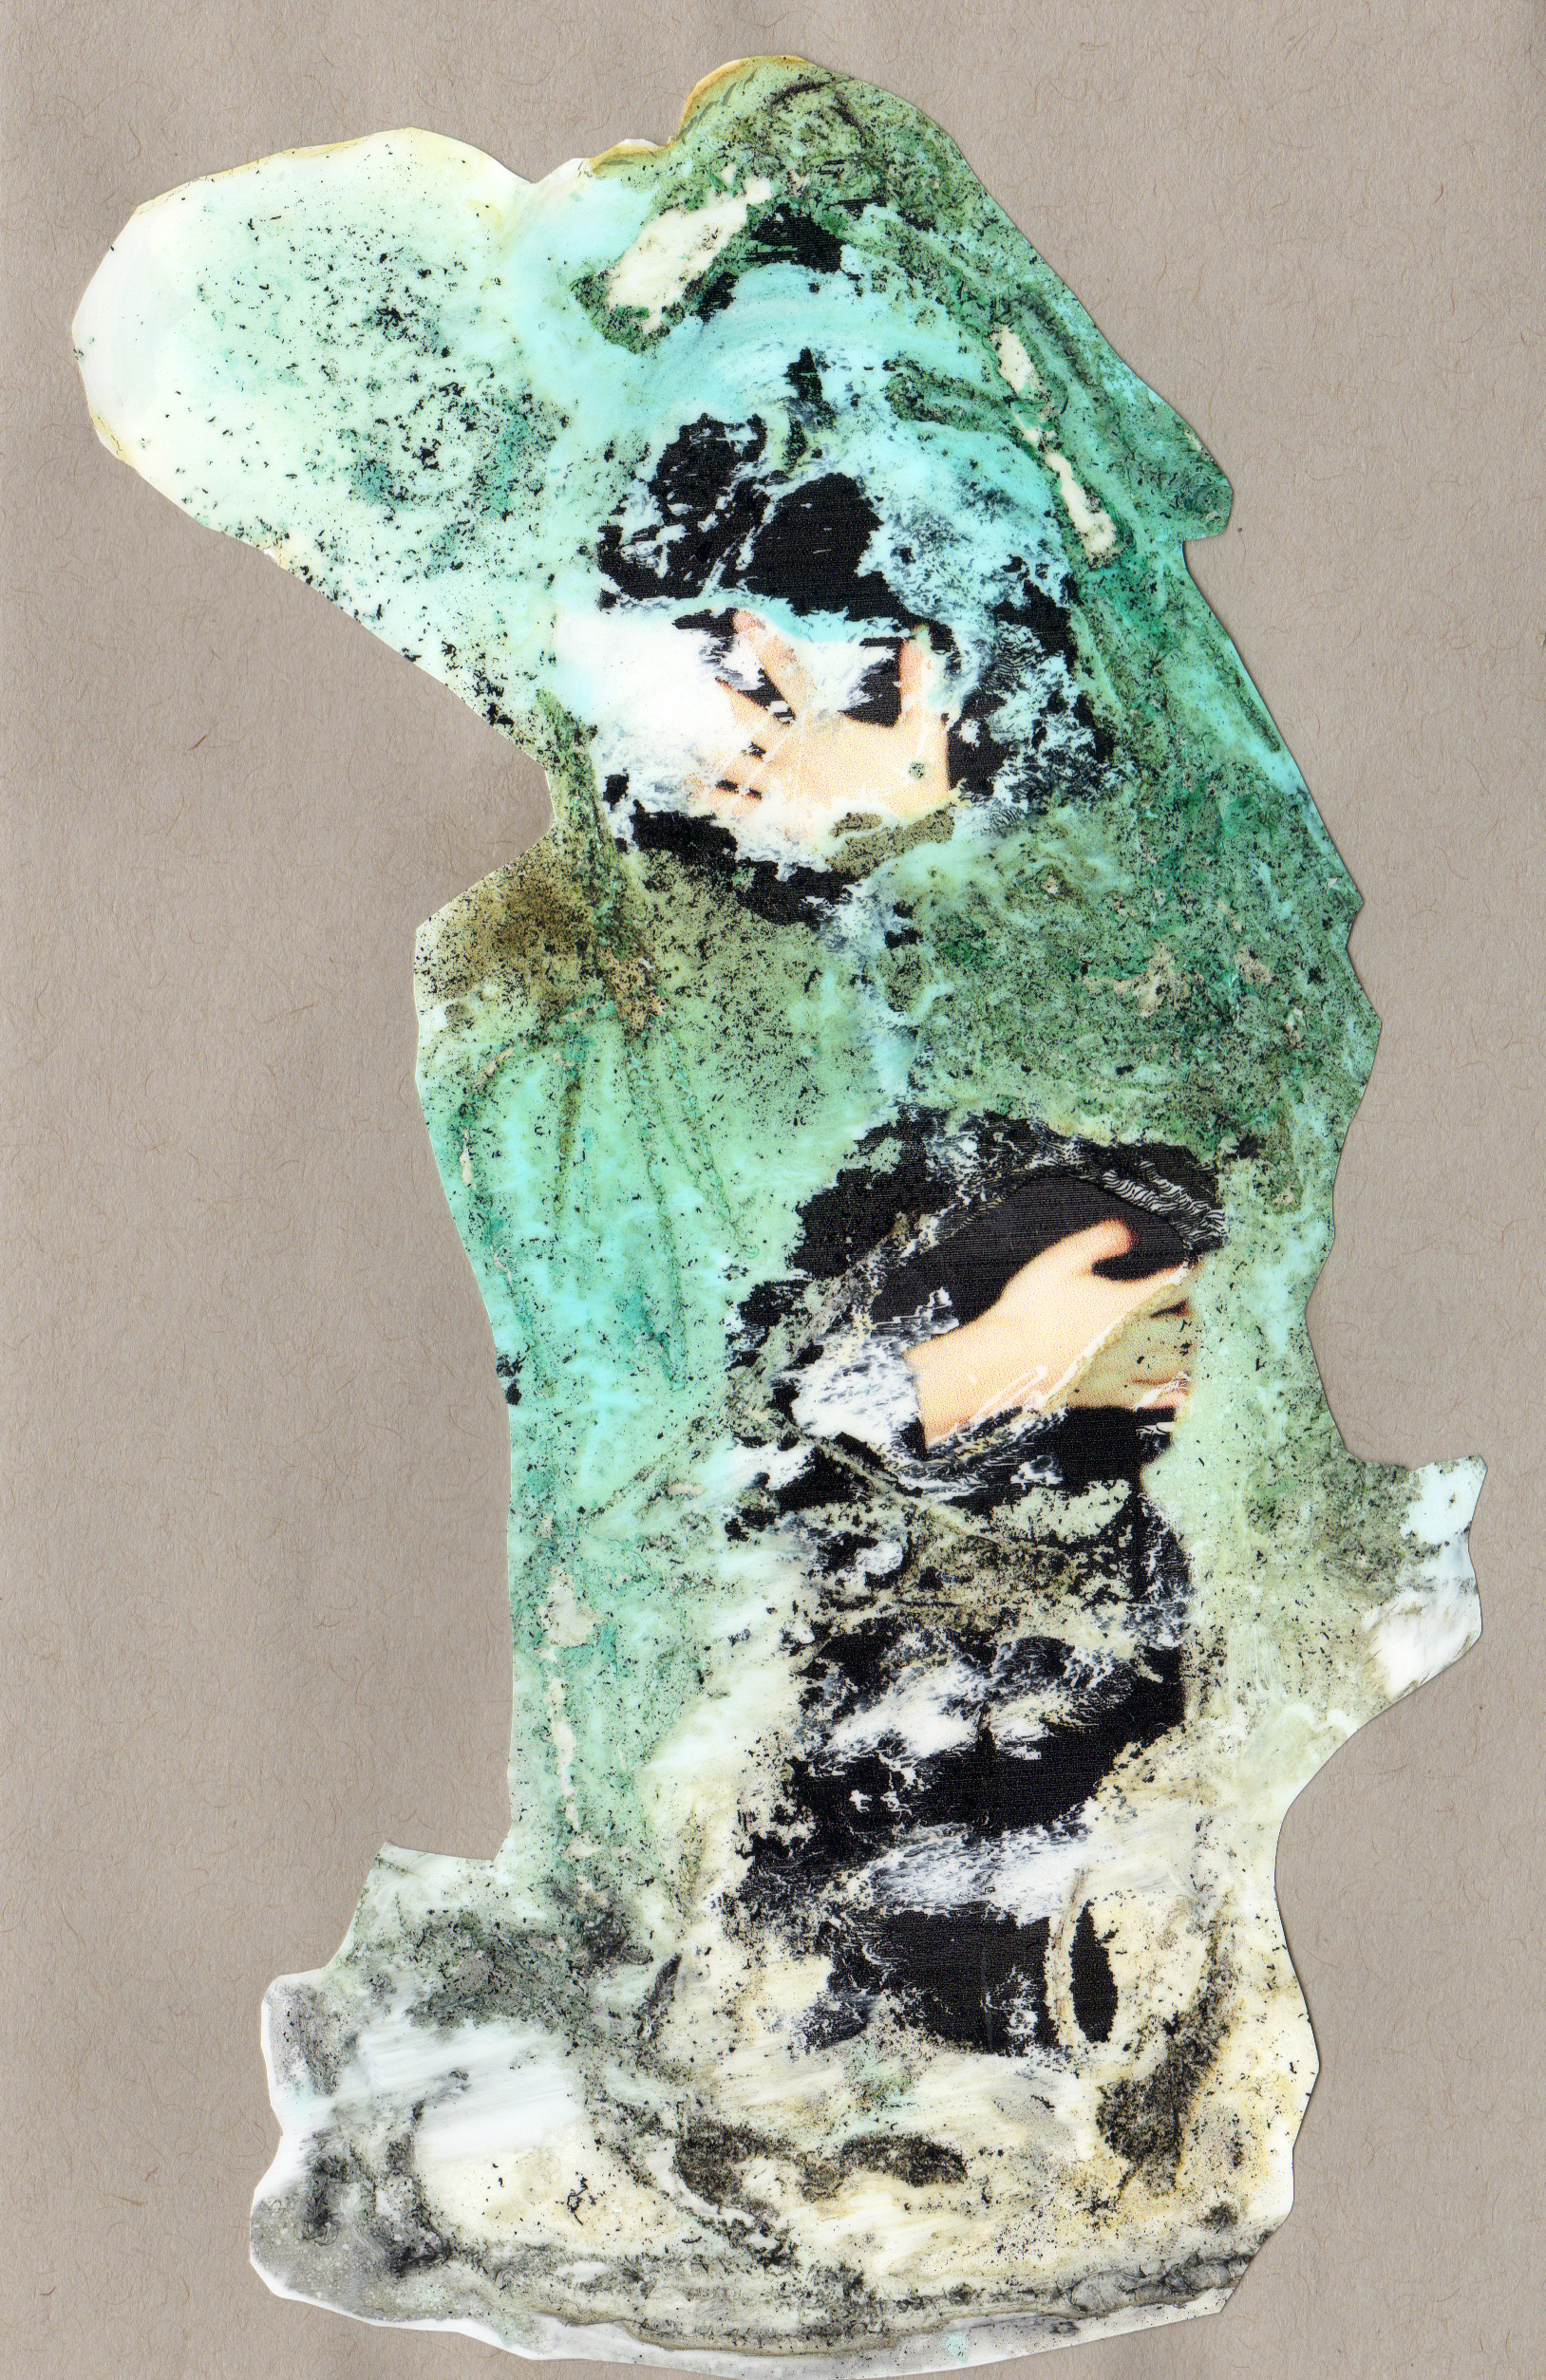 Reach Around, 2014, paint transparency archival ink and paper, 8.5x5.5 inches